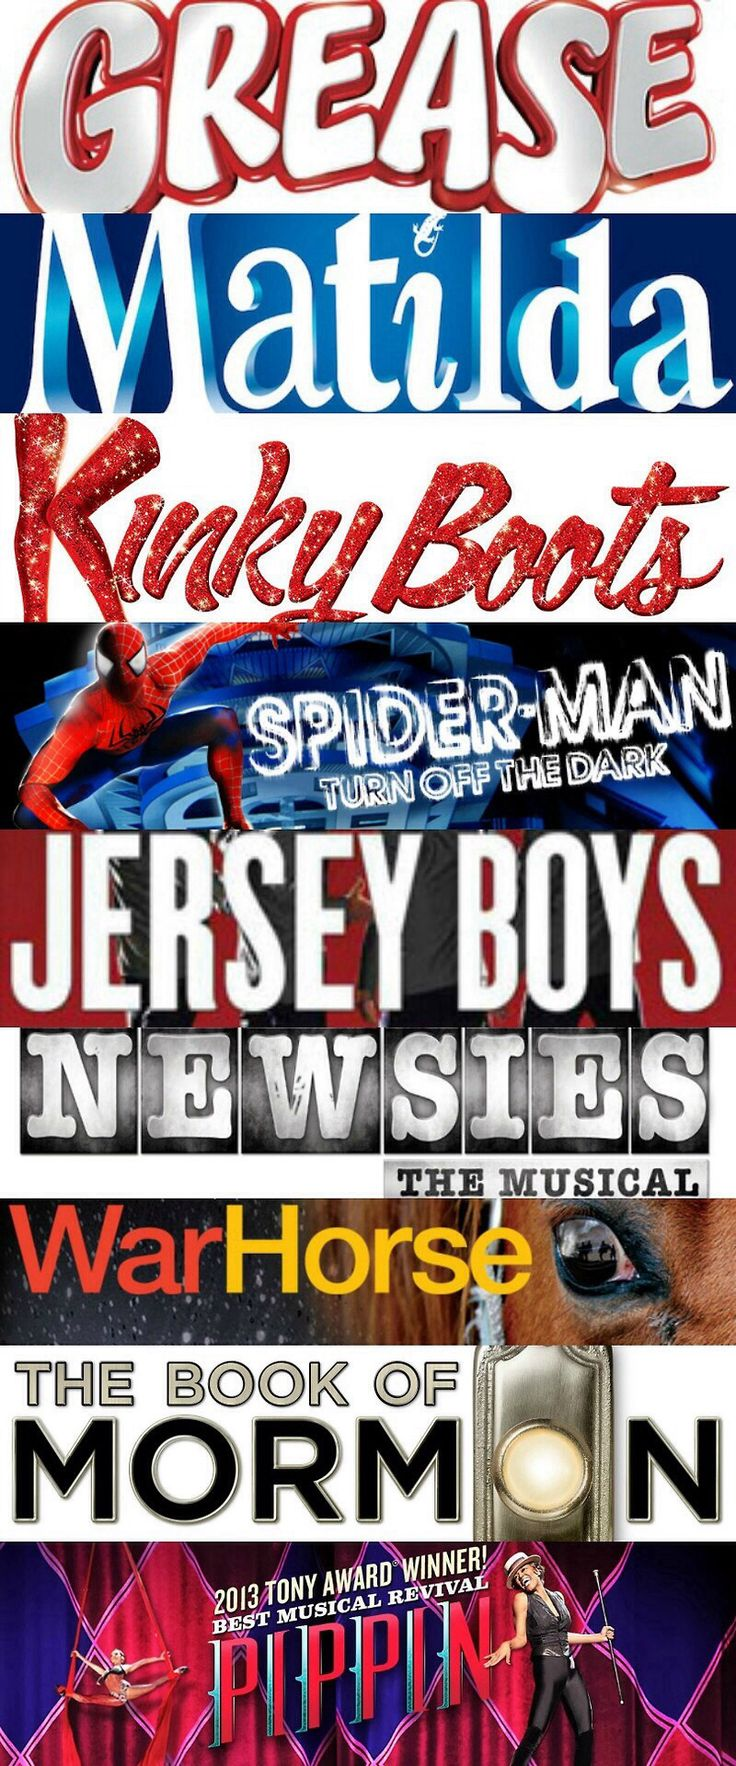 Grease, Matilda, Kinky Boots, Spiderman: Turn Off the Dark, Jersey Boys, Newsies, War Horse, The Book of Mormon, Pippin